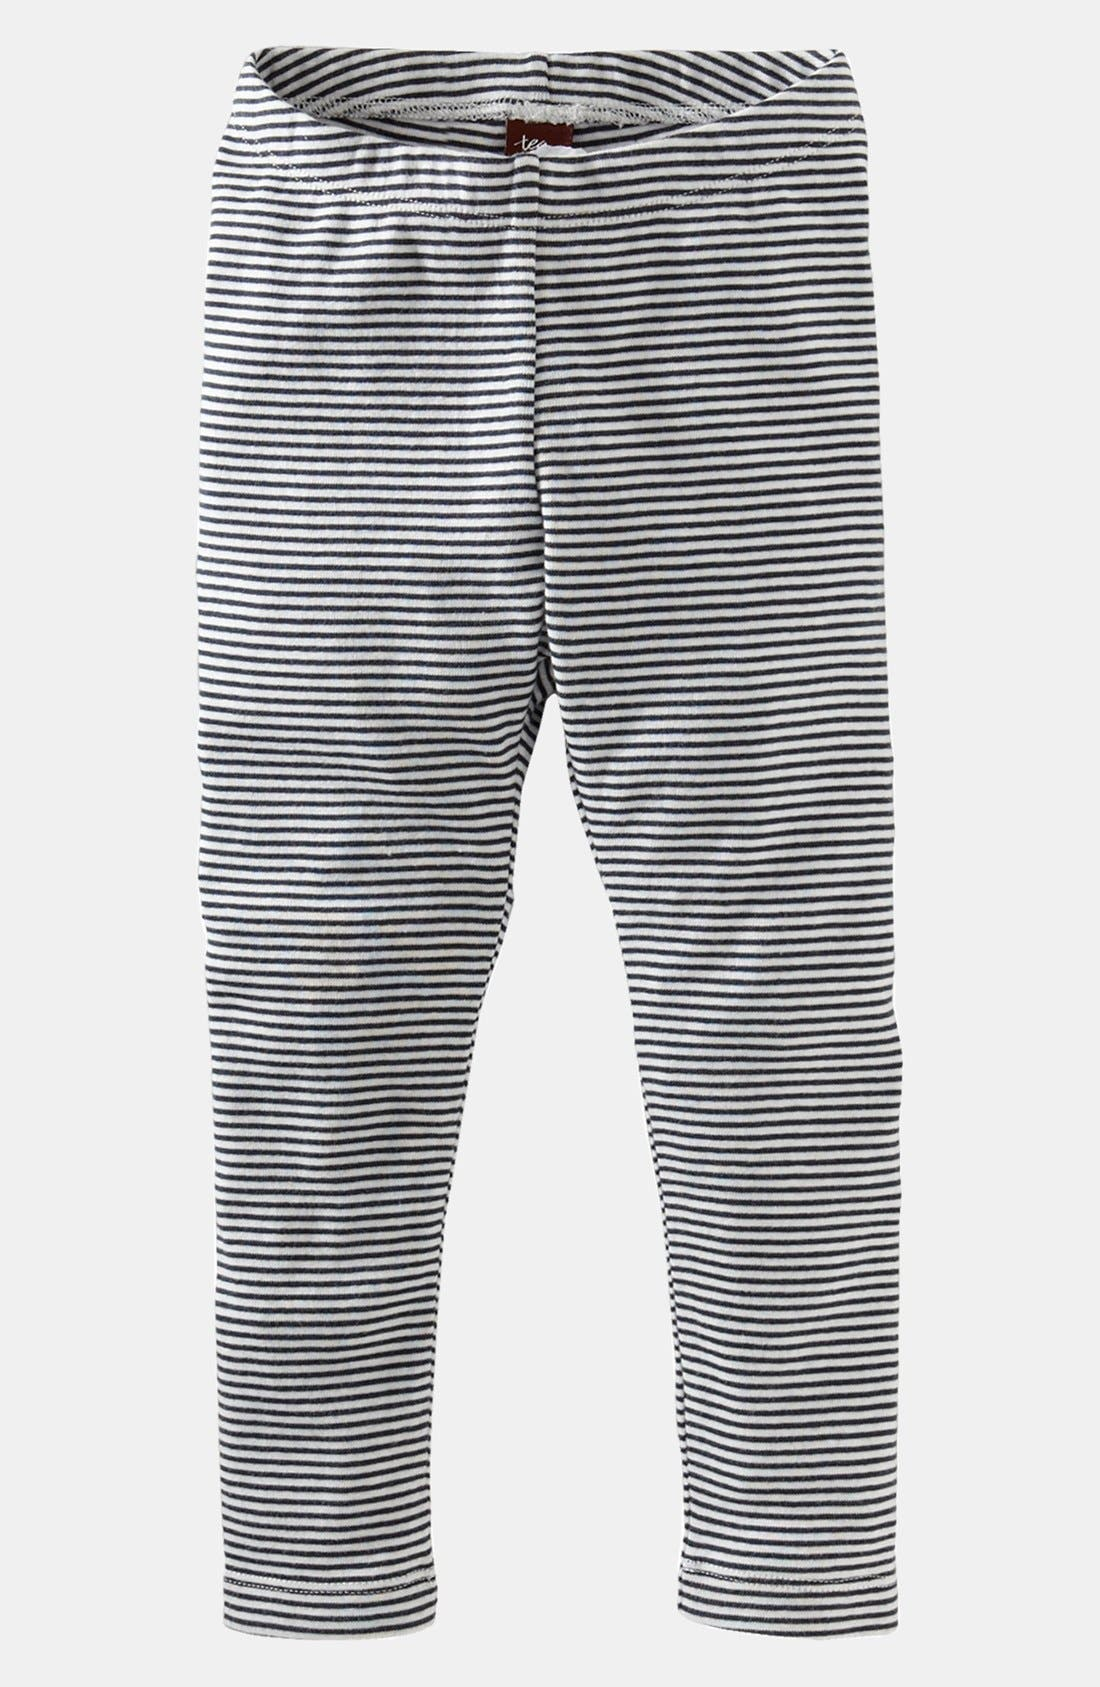 Main Image - Tea Collection Stripe Leggings (Toddler Girls)